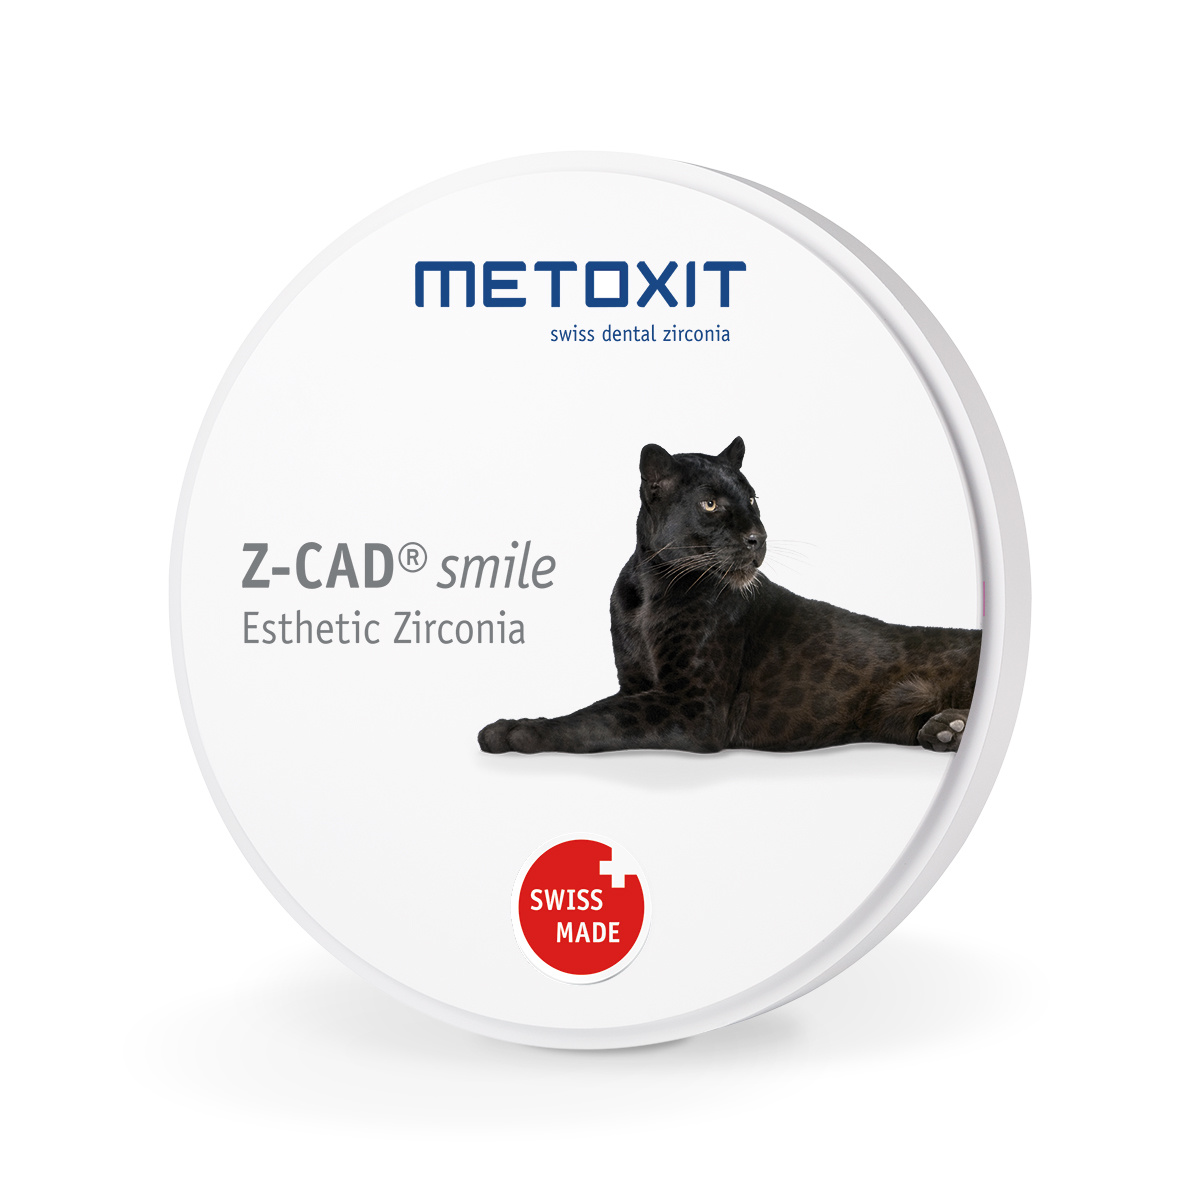 METOXIT Z-CAD® smile - 98.5x25mm